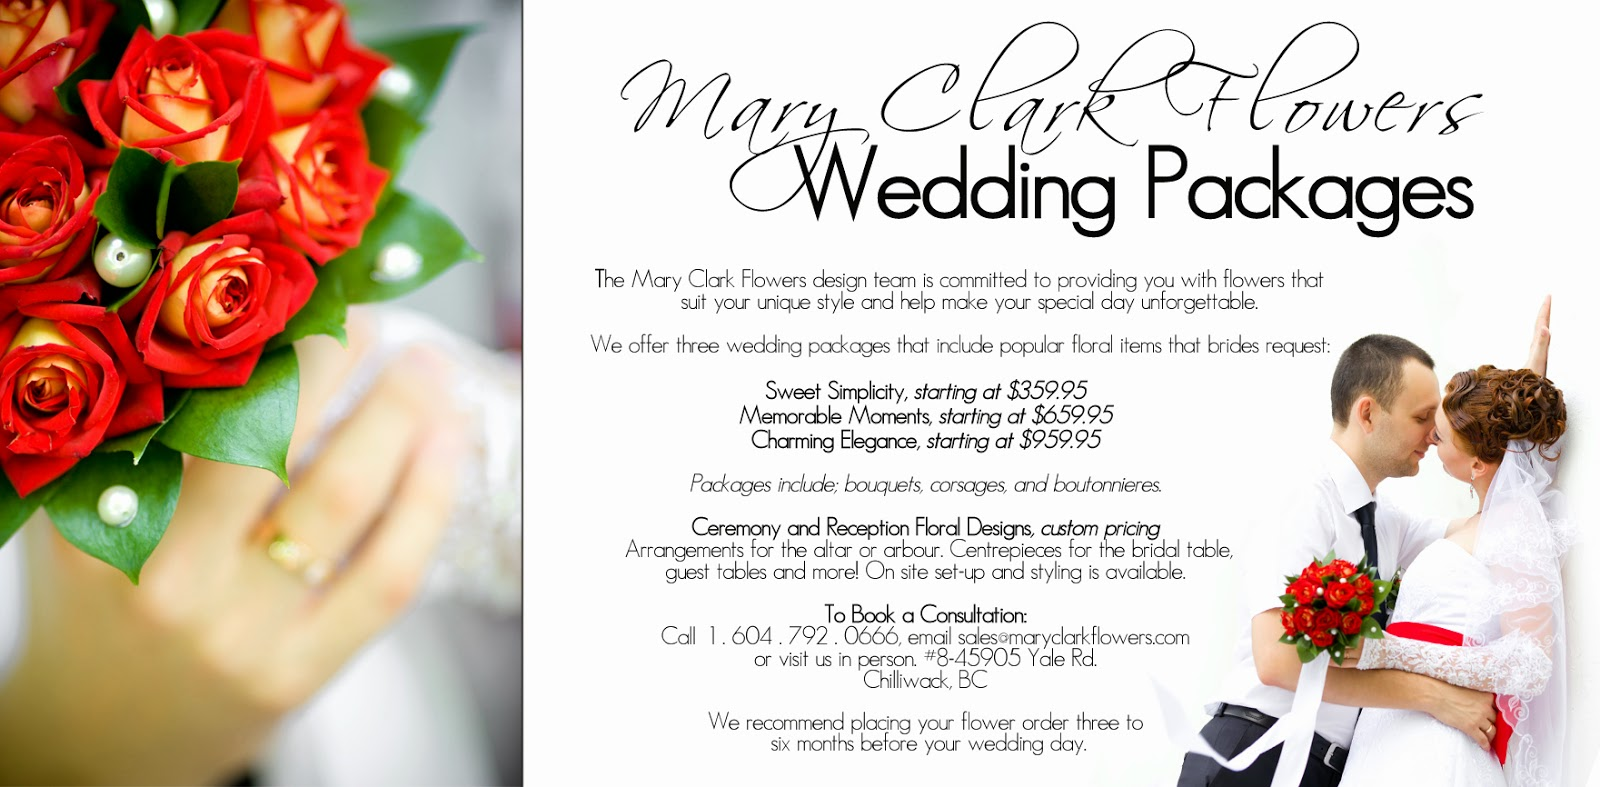 Mary Clark Flowers Wedding Flower Packages email: sales@maryclarkflowers for package